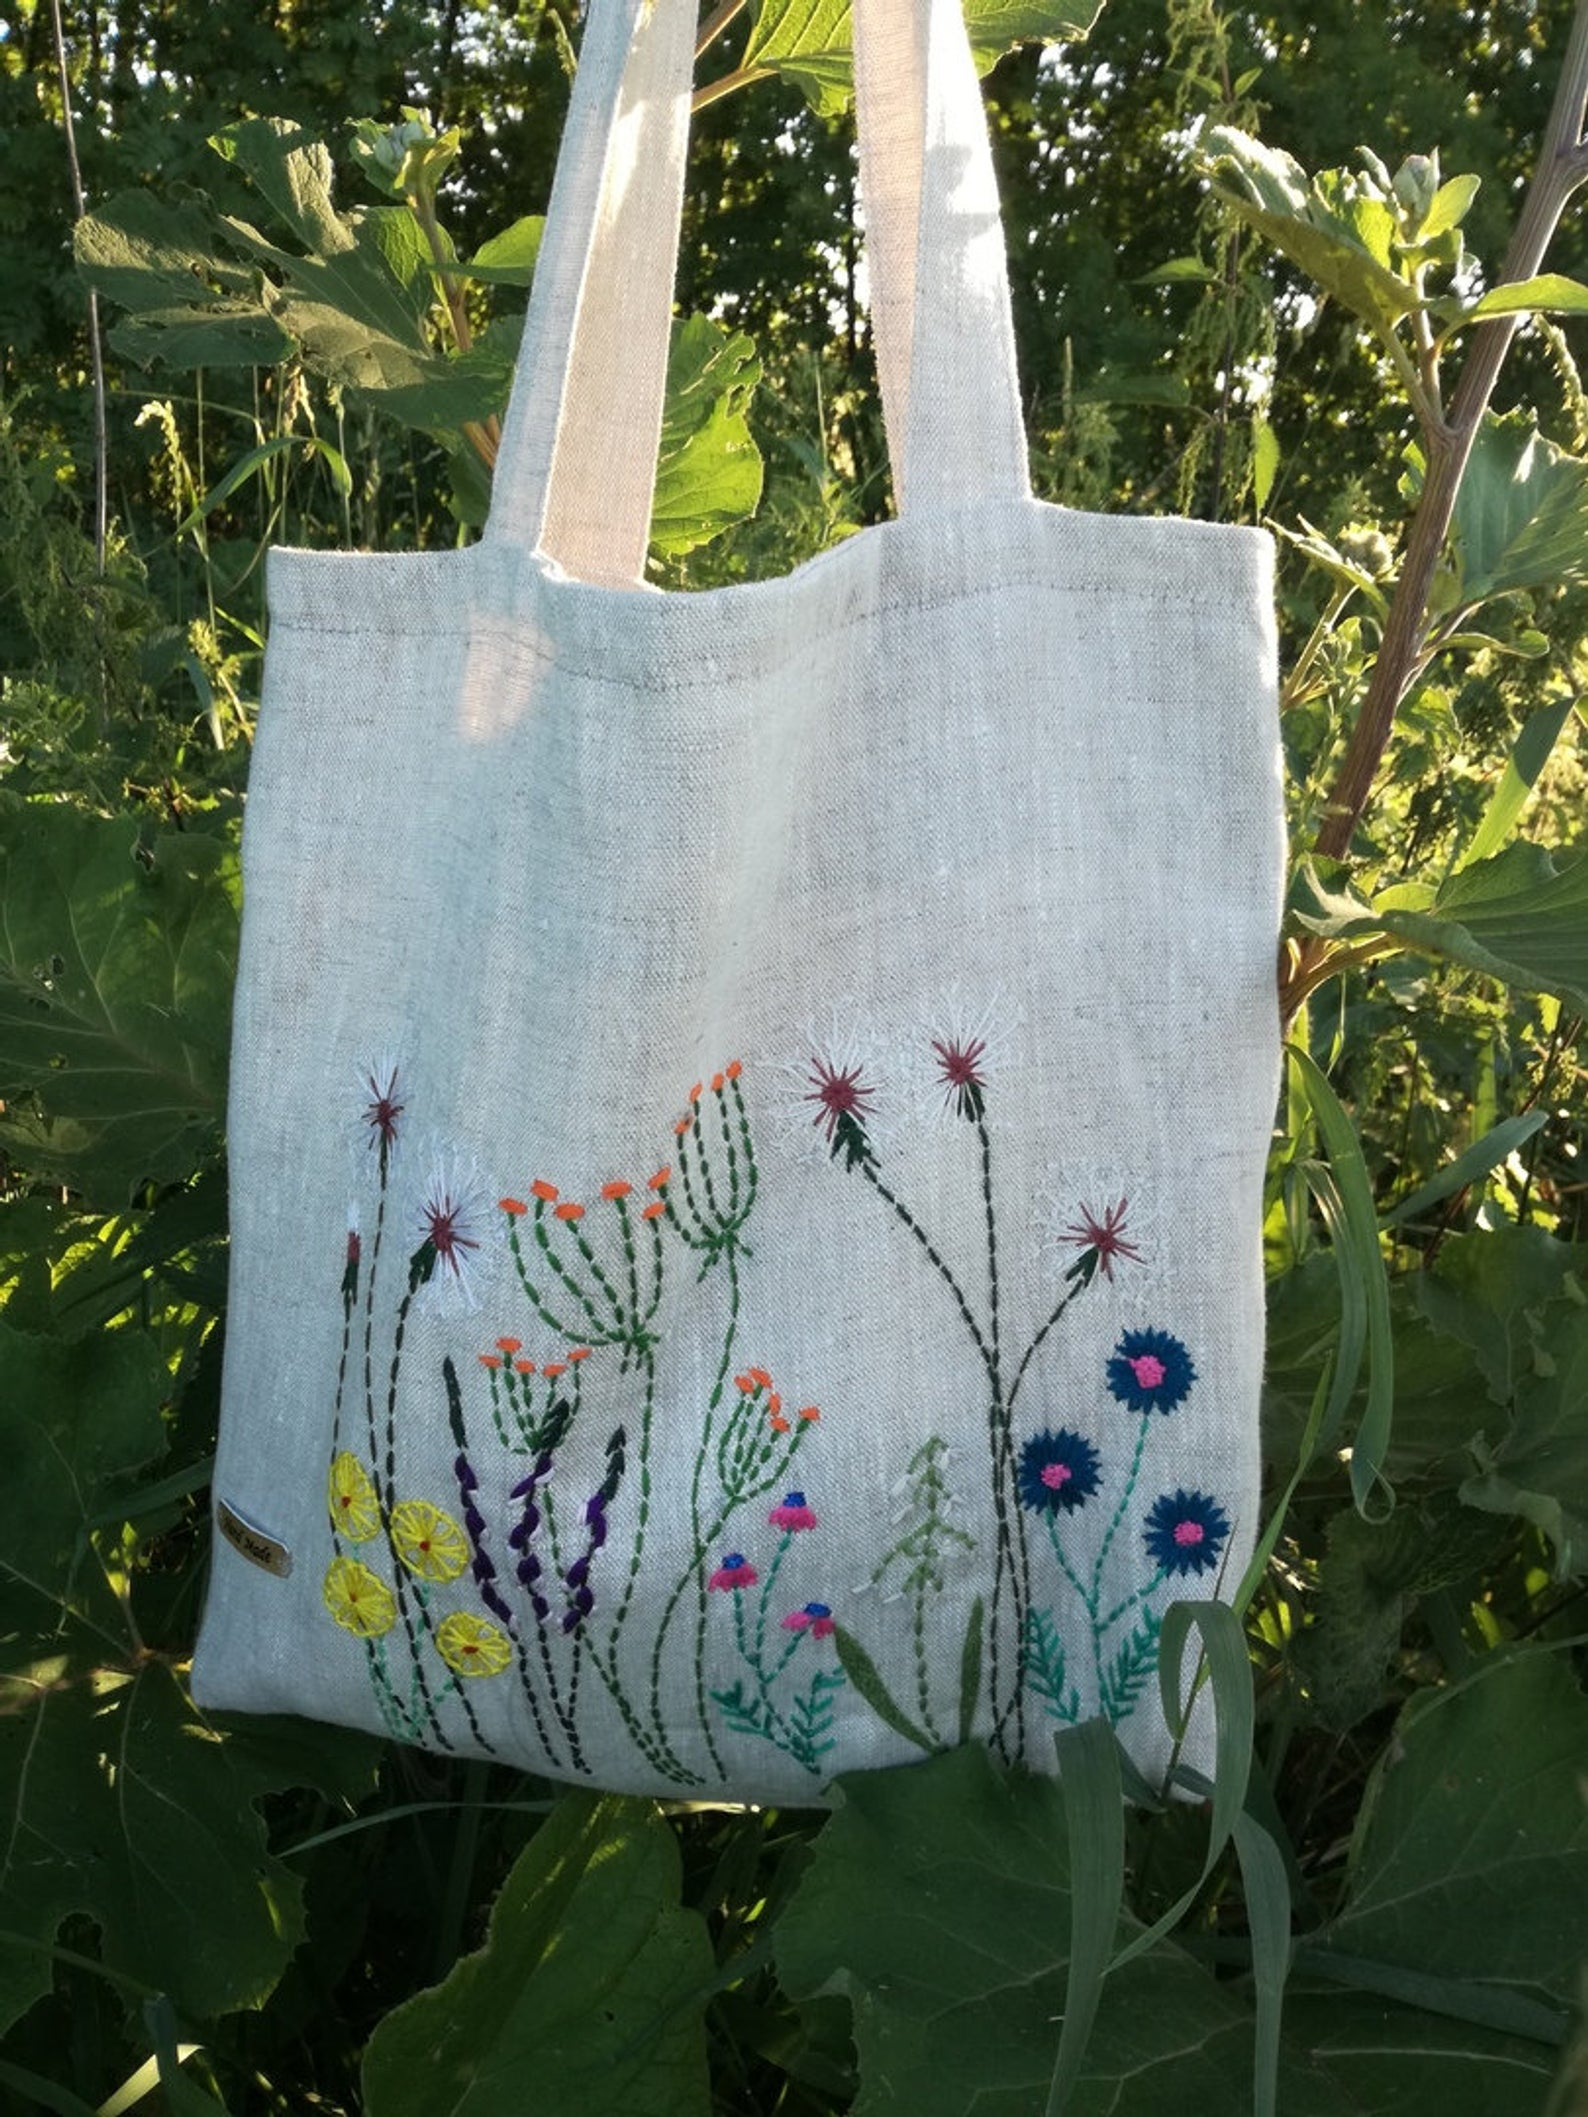 Flirtily Floral - A linen bag, daintily embroidered with springing flowers. Hand made in Belarus, this is so pretty it can go straight from the market to a picnic in a park!